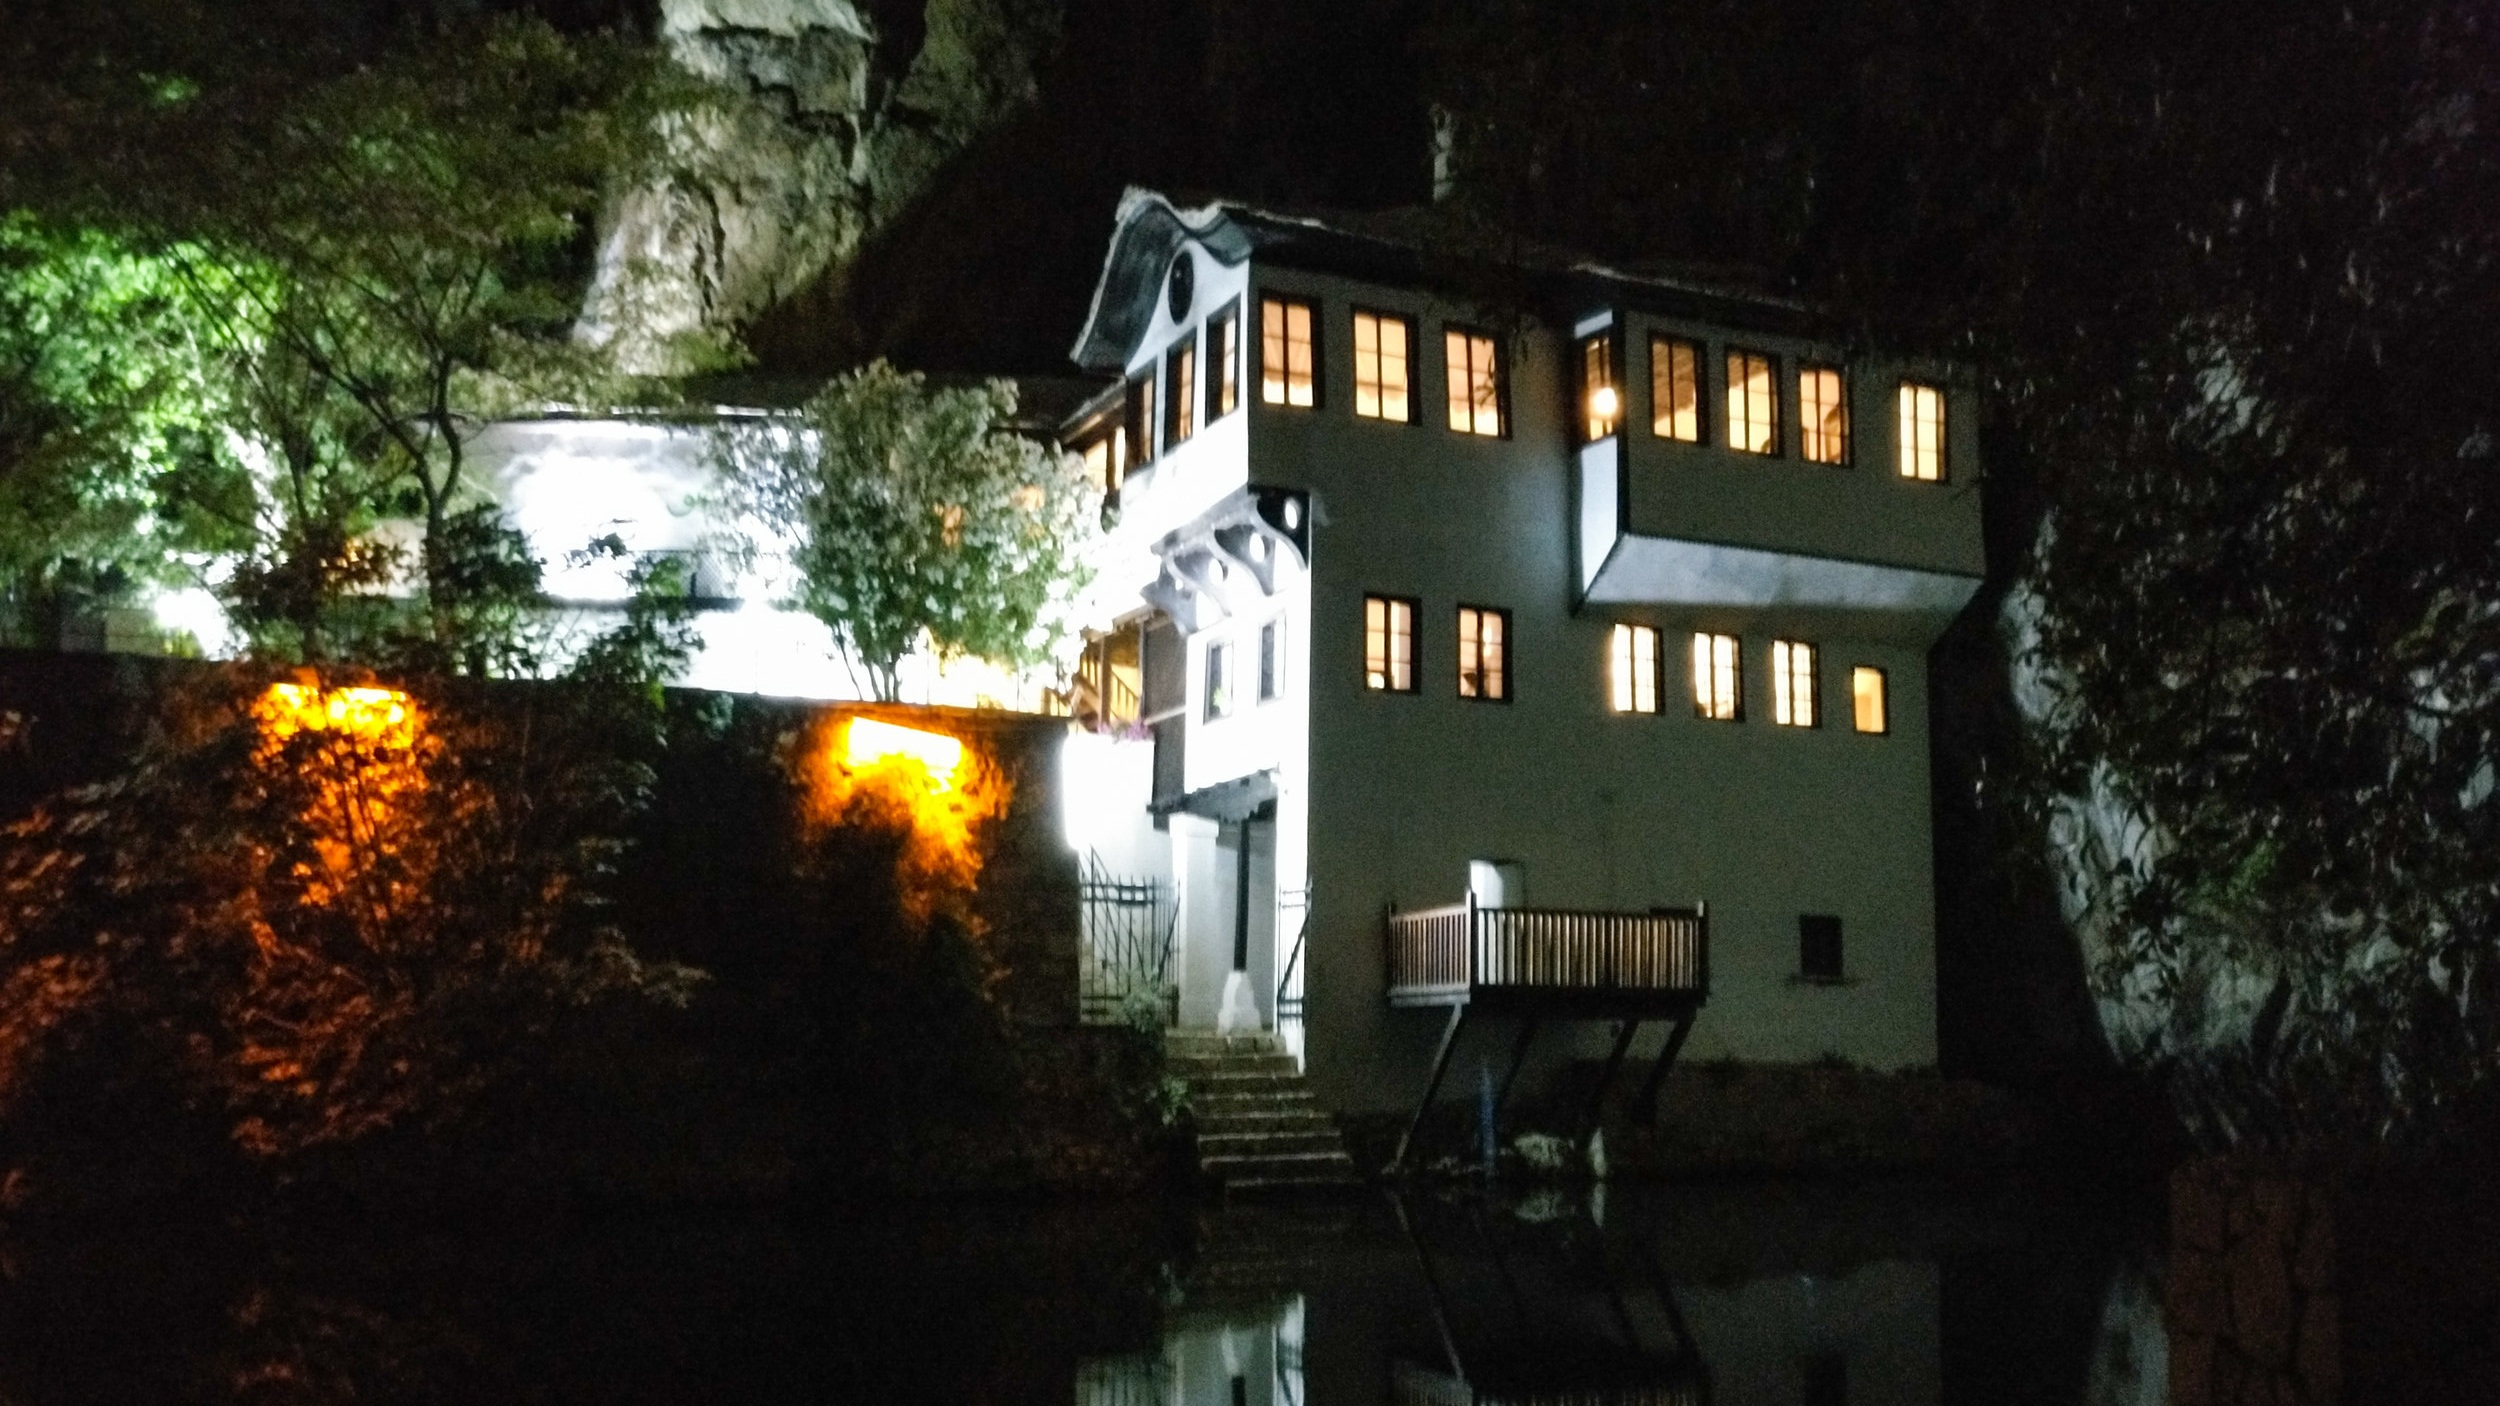 The Tekija (Dervish House) at Blagaj